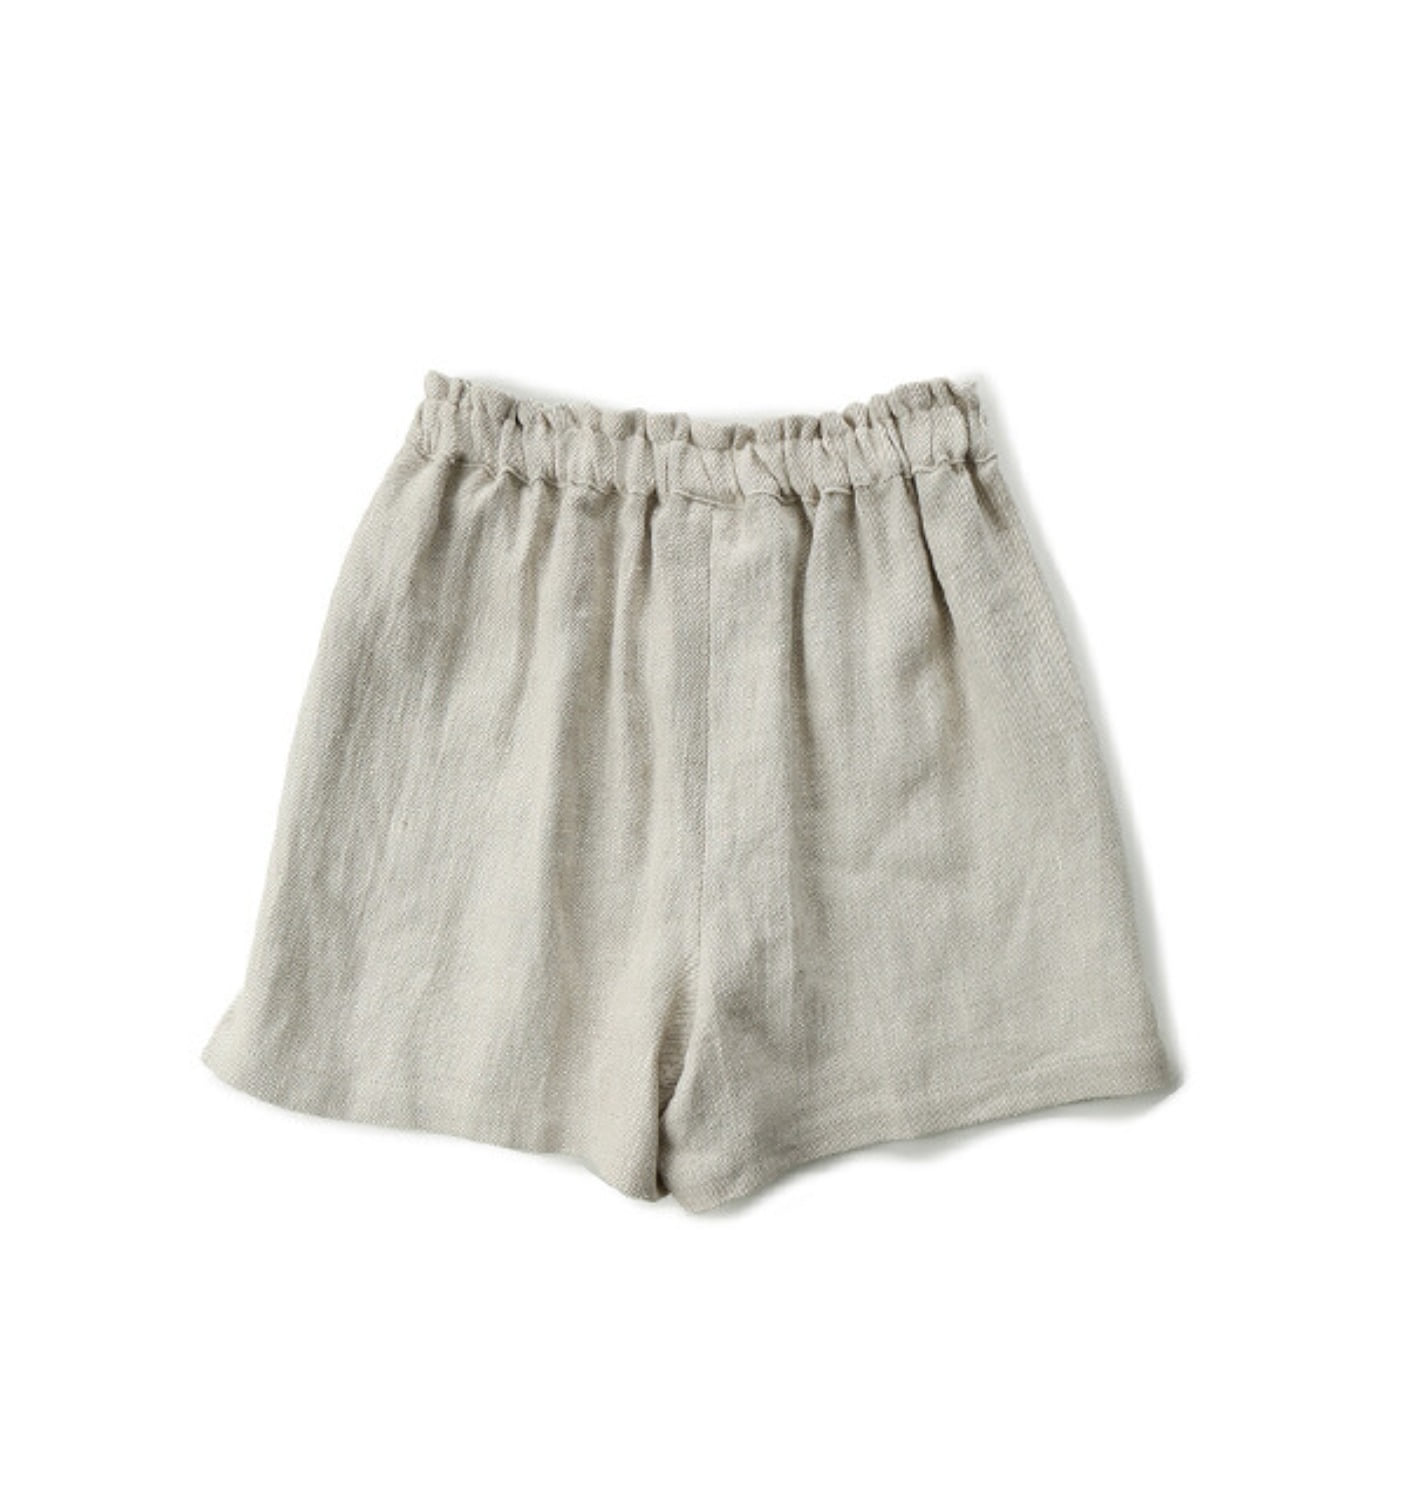 TULIP SHORTS FRENCH LINEN TWILL